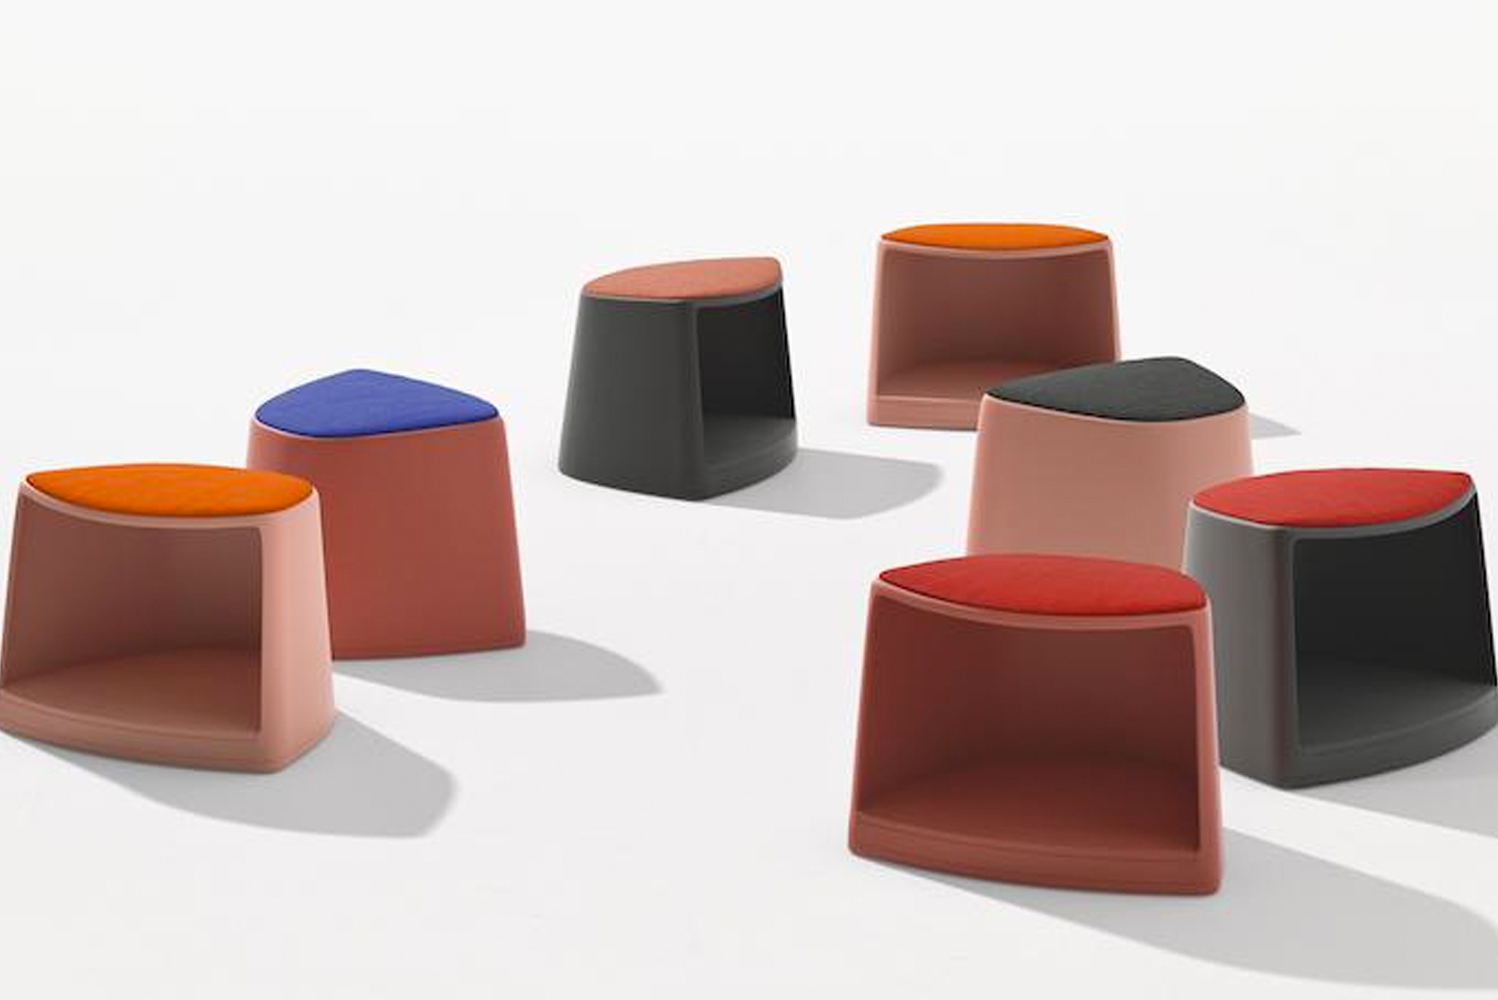 Designed by Barcelona studio Lievore Altherr, Cila Go is suitable for educational environments or anywhere where meeting, learning and training is required.